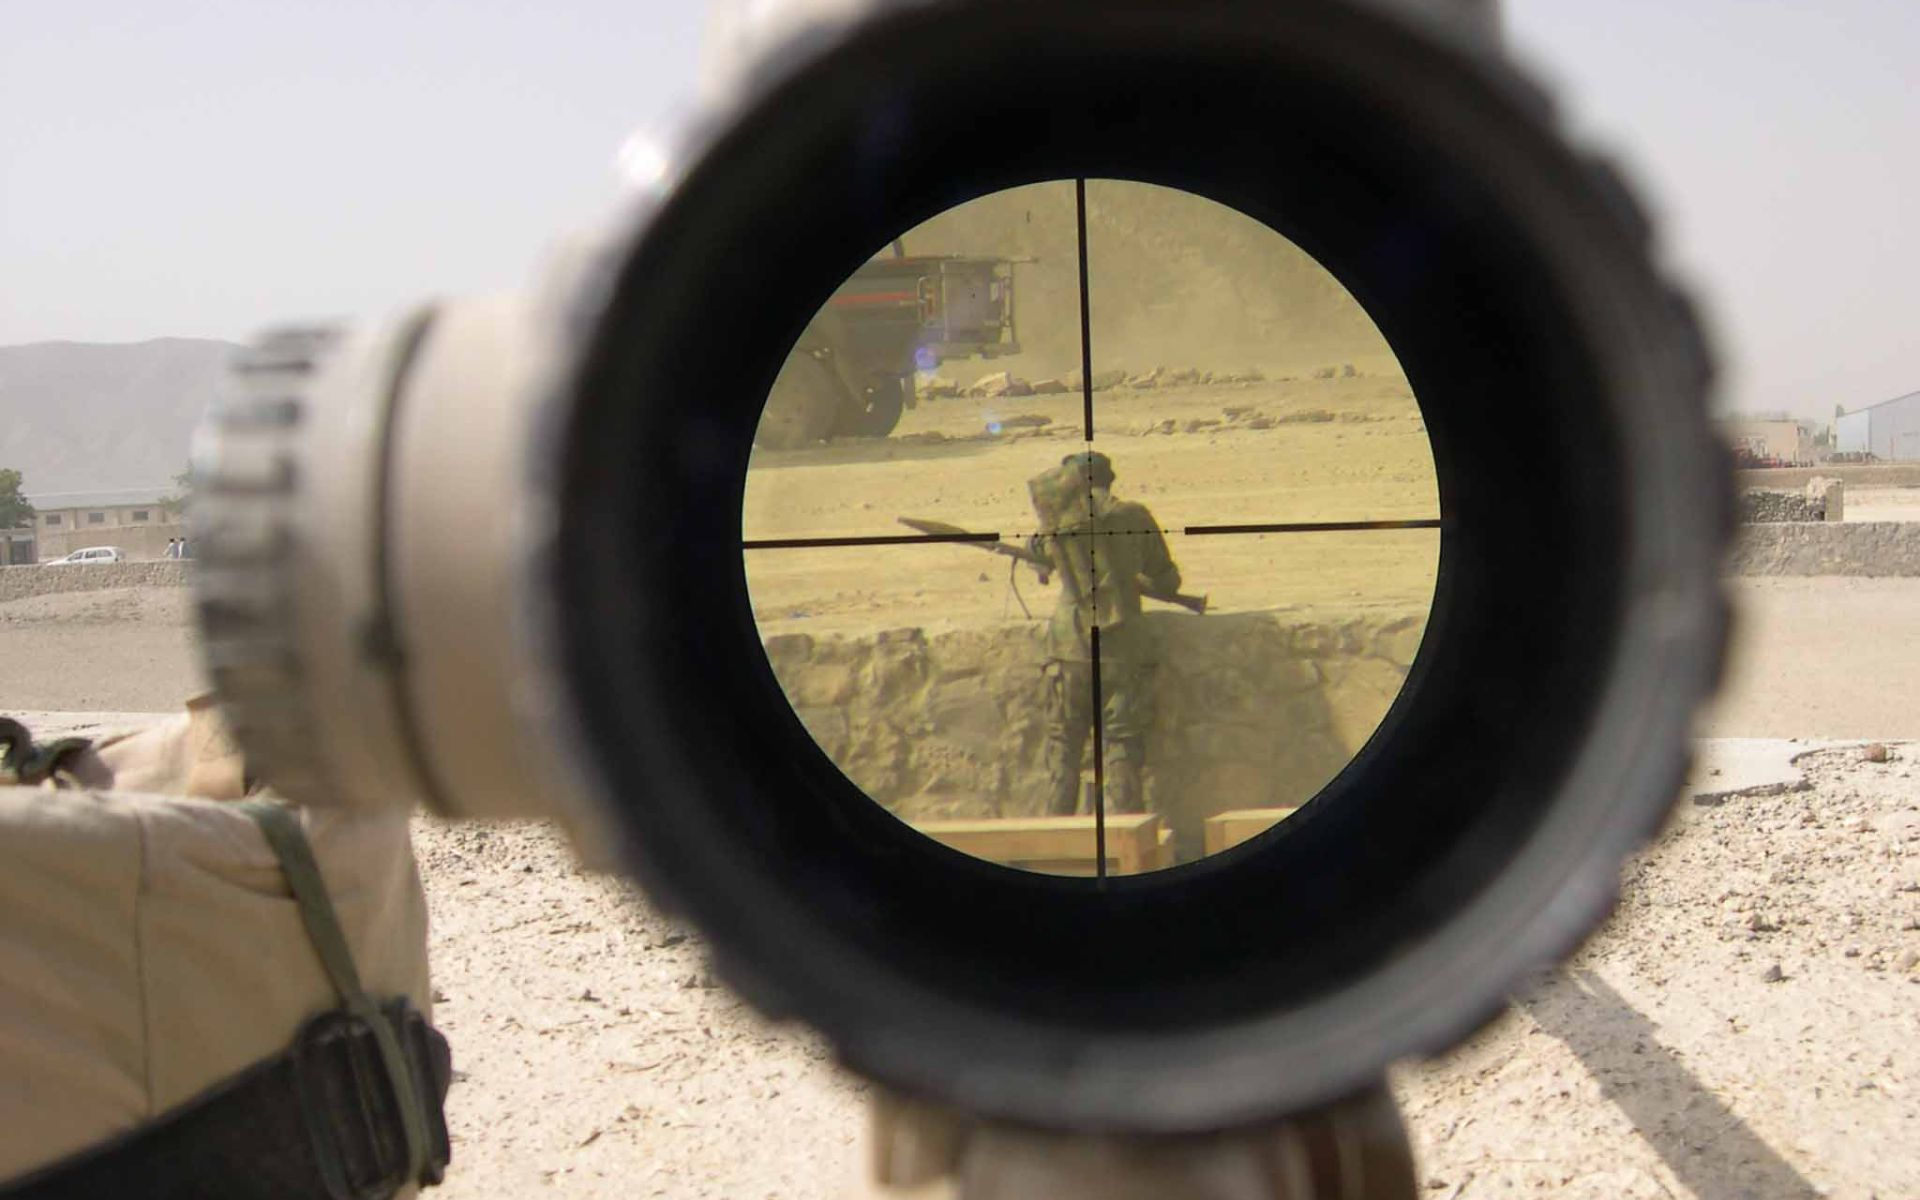 Us Army Sniper Wallpaper 10211 Hd Wallpapers